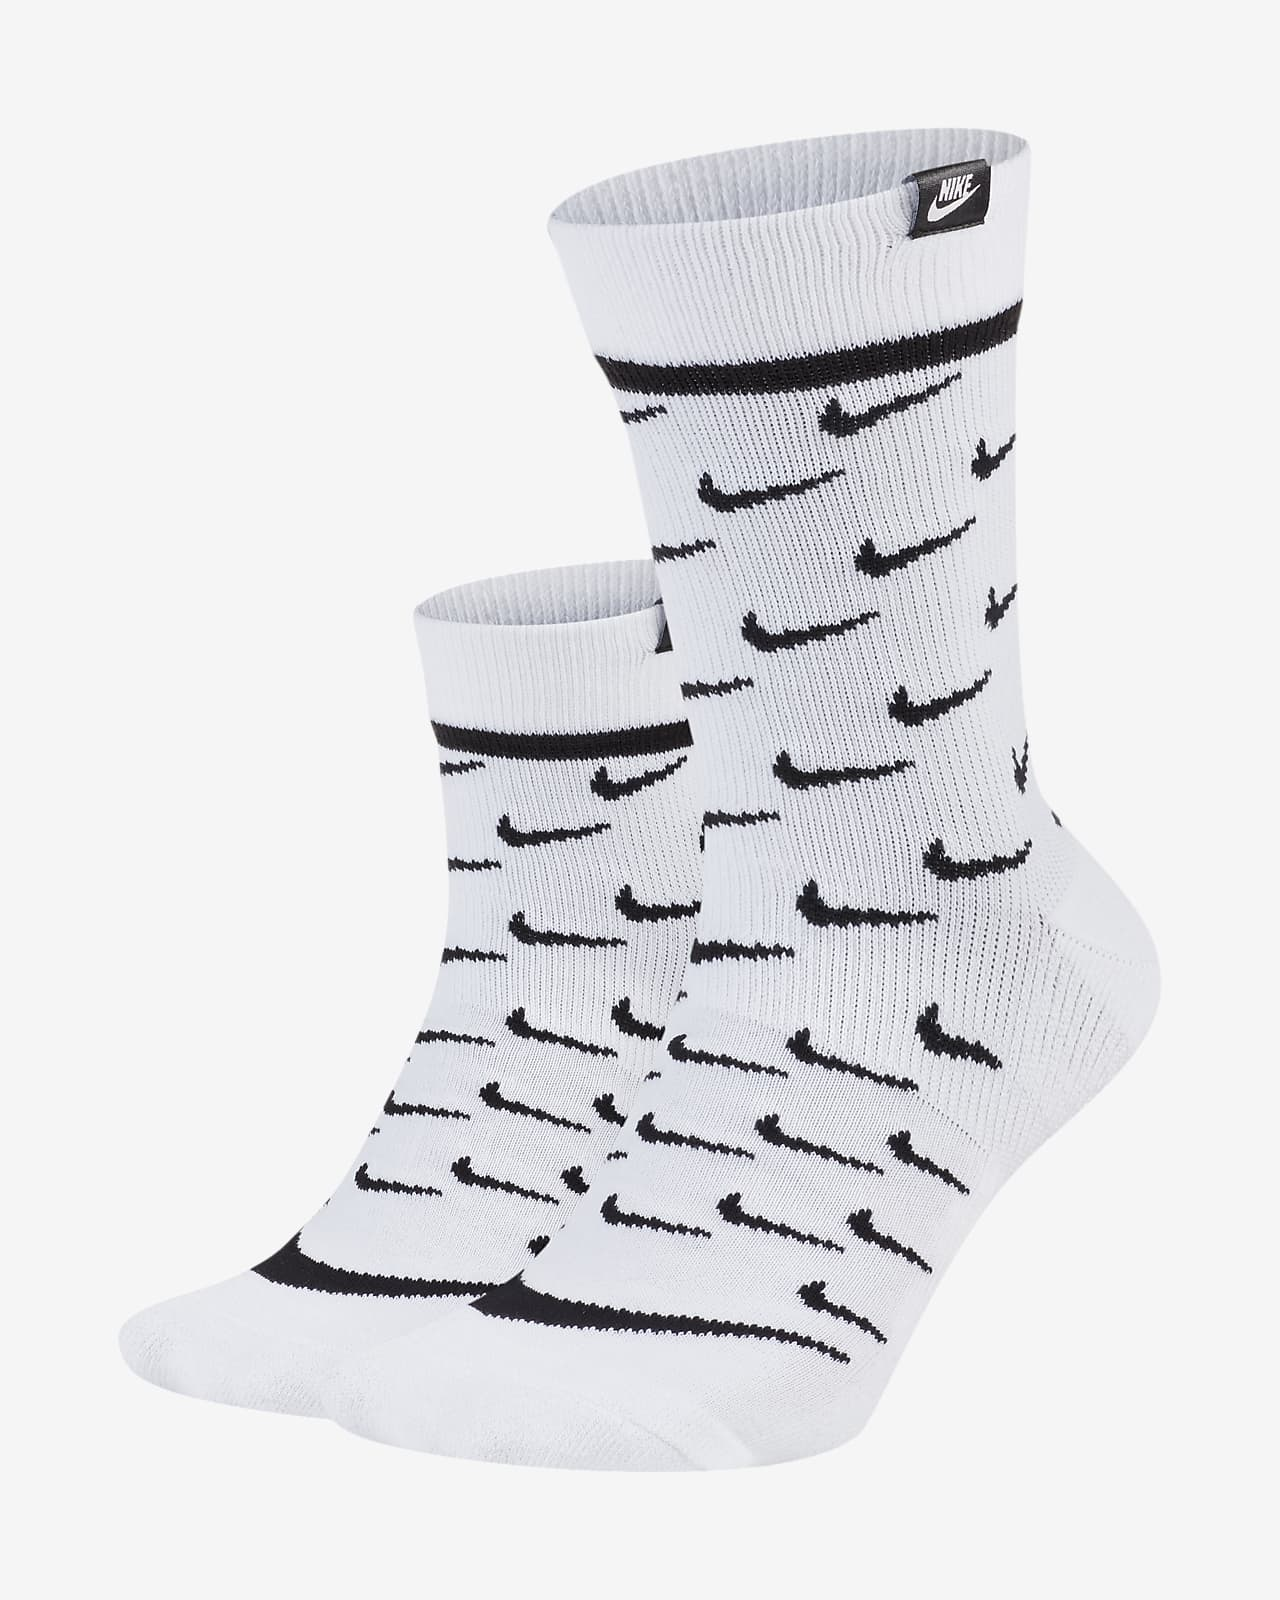 Chaussettes mi-mollet Nike Sportswear SNEAKR Sox (2 paires)